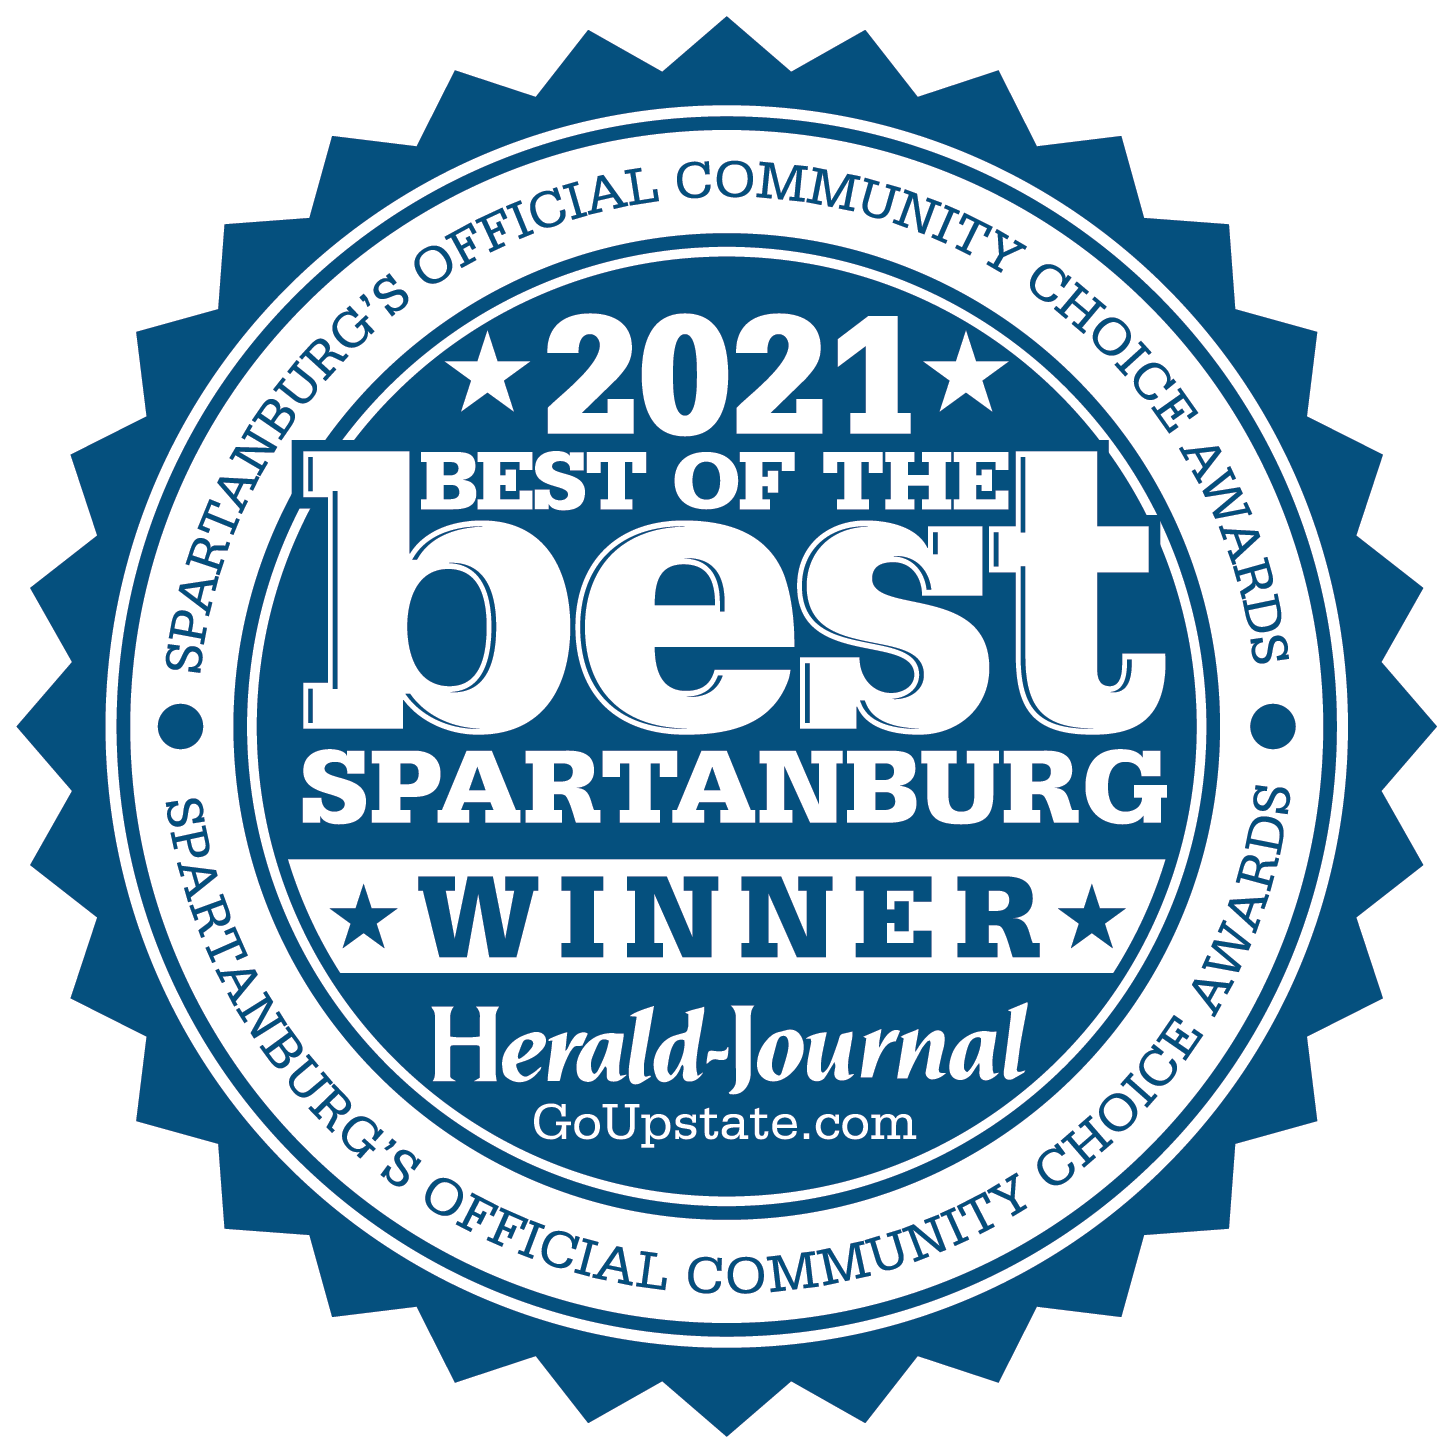 2021 Best of the best spartanburg's official peoples choice award by herald journal